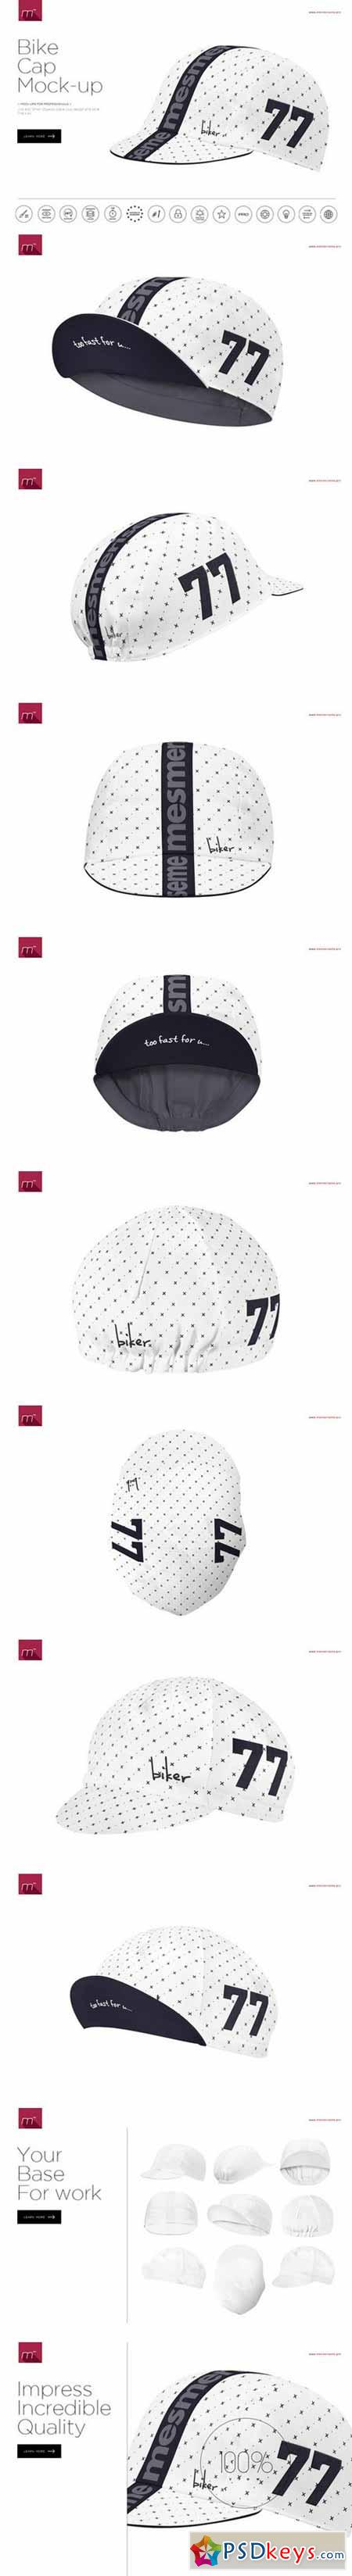 Bike Cap 2 Types Mock-up 525104 » Free Download Photoshop Vector ... 7fa9f9338